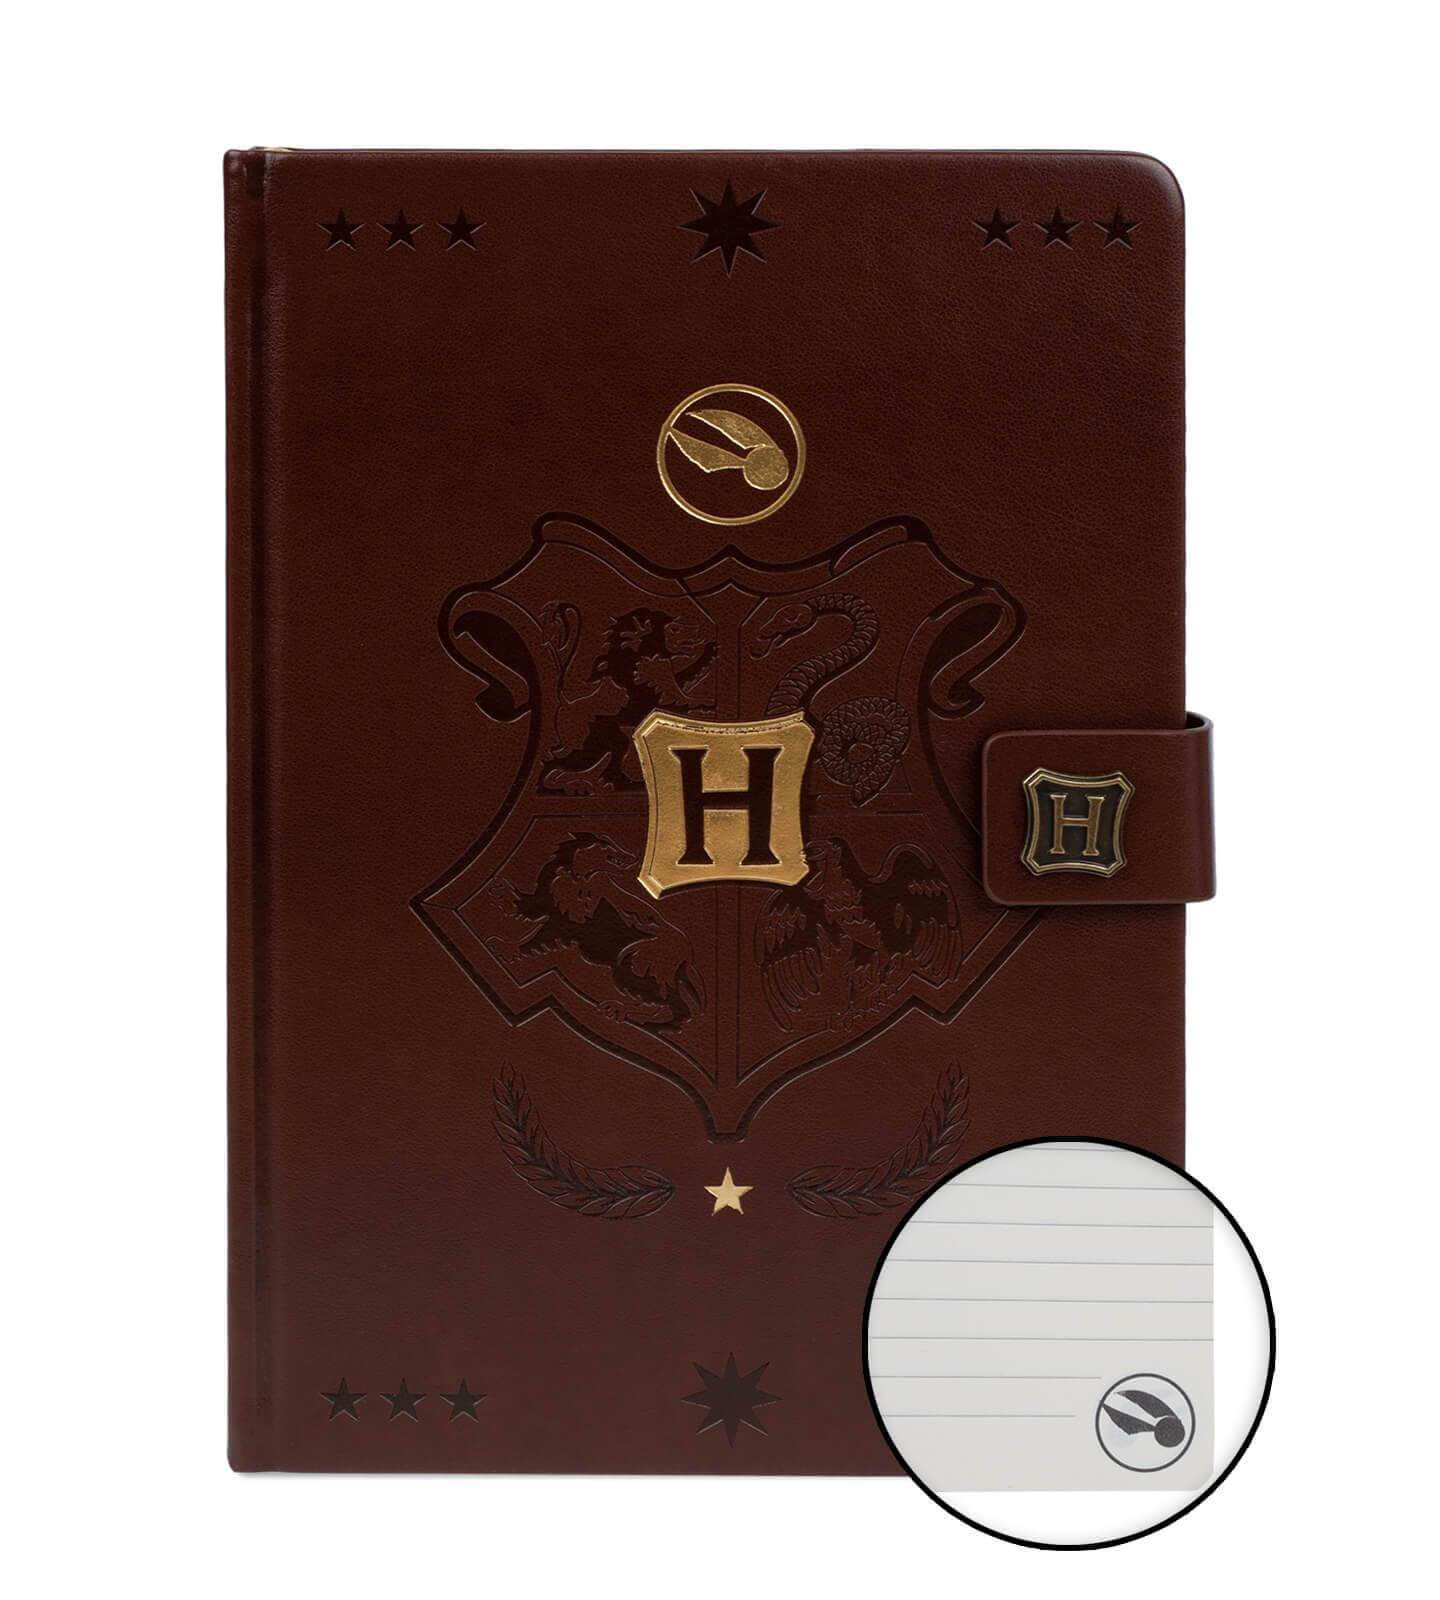 CARNET A5 PREMIUM QUIDDITCH - HARRY POTTER - la boutique du sorcier